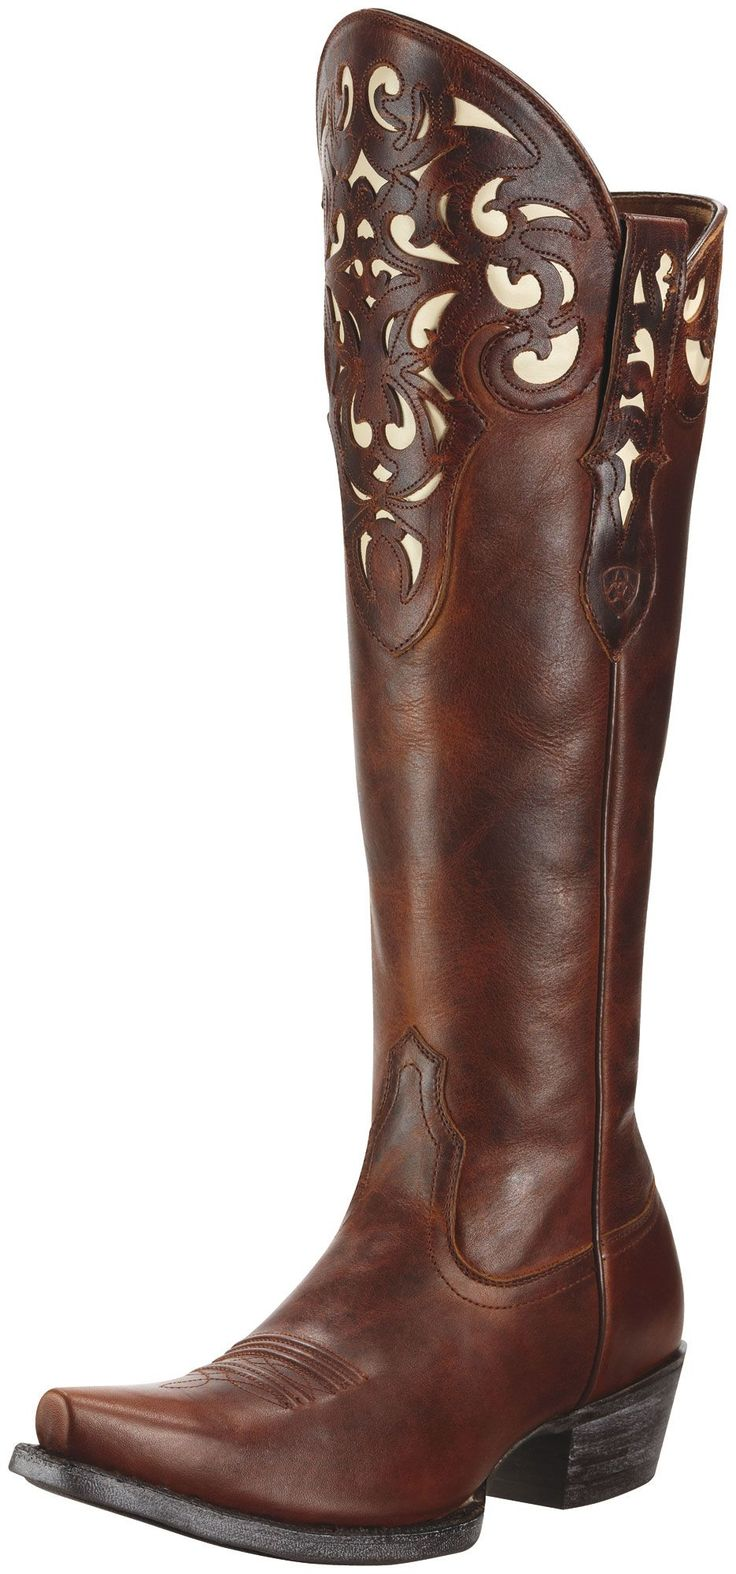 Western style fashion boots 97